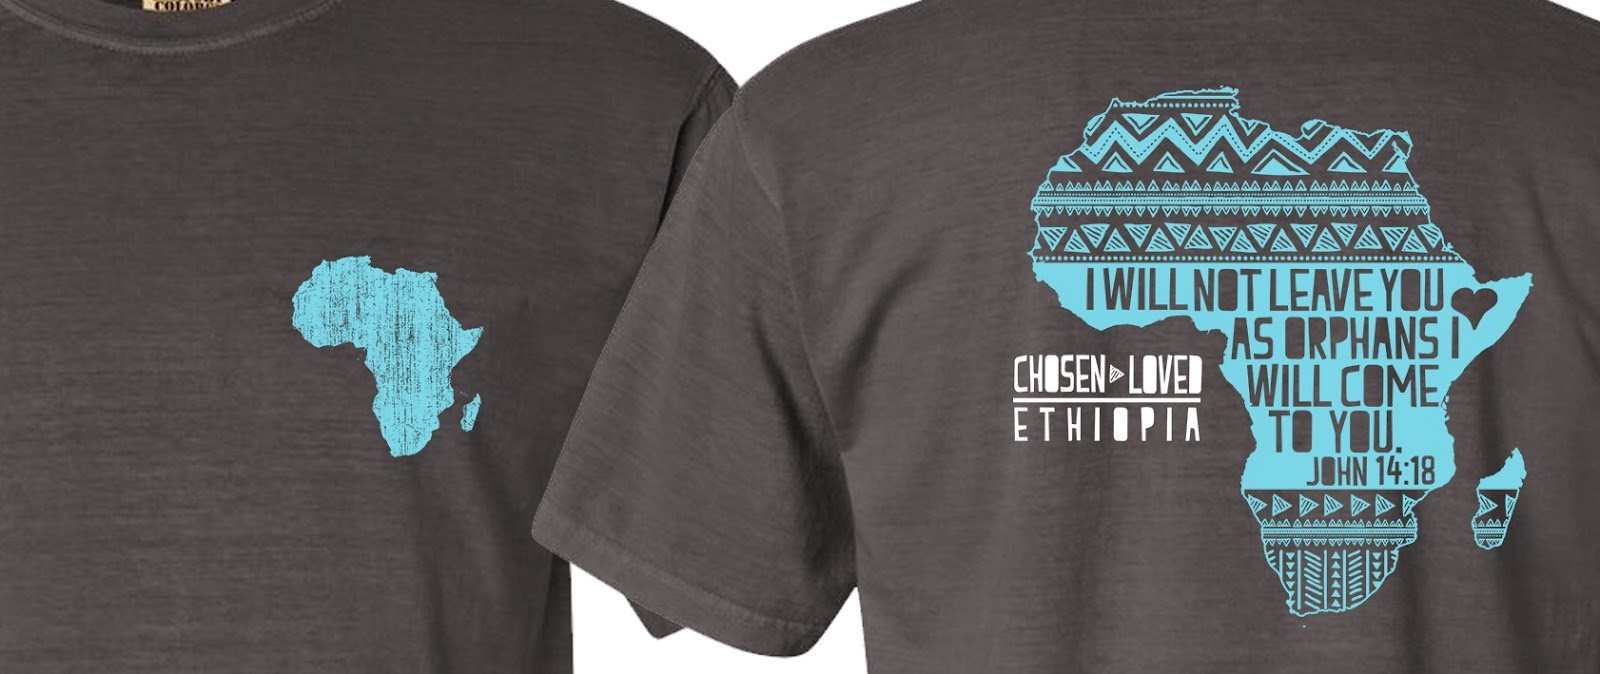 Design t shirt for fundraiser - They Are 25 Each For Short Sleeve And 30 For Long Sleeve If You Live In The Jackson Area Or If We Will See You Anytime You Do Not Have To Pay Shipping